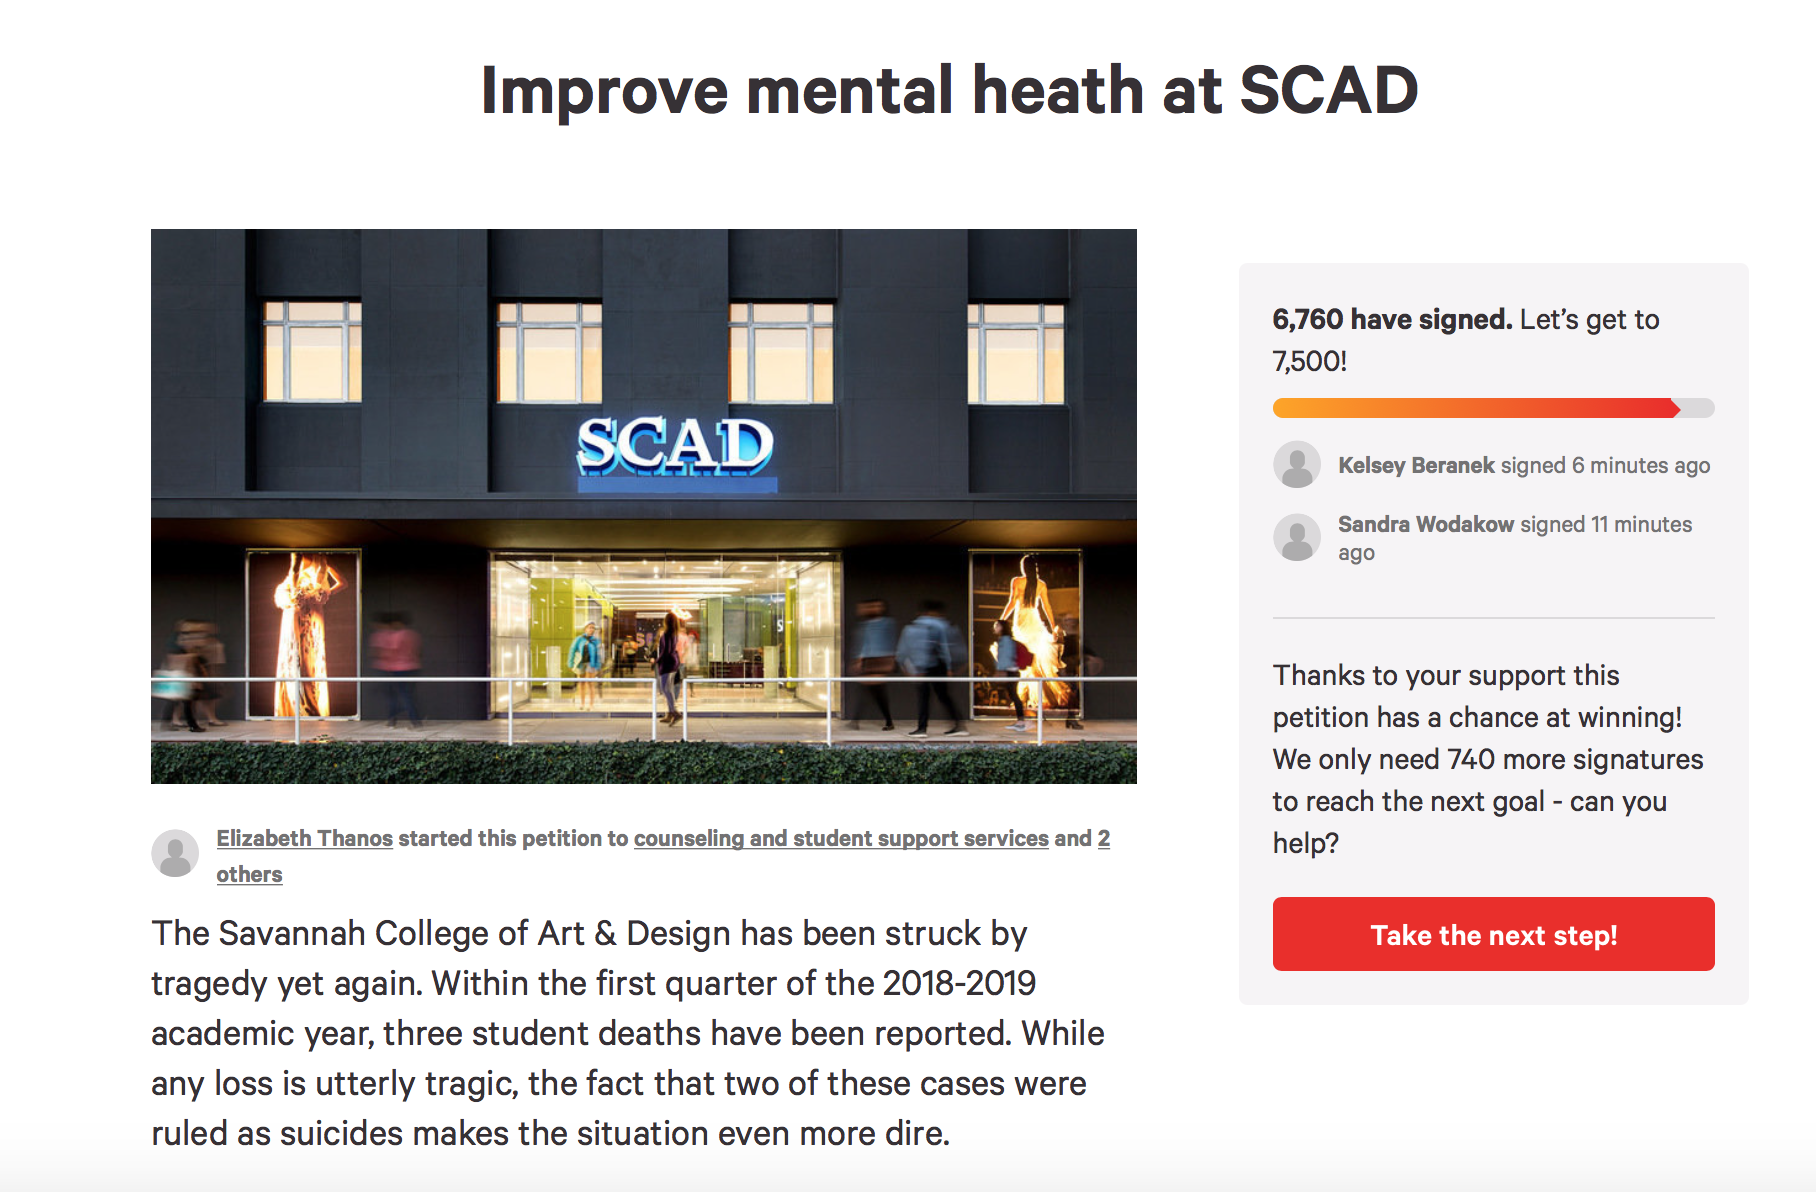 SCAD Mental Health Petition